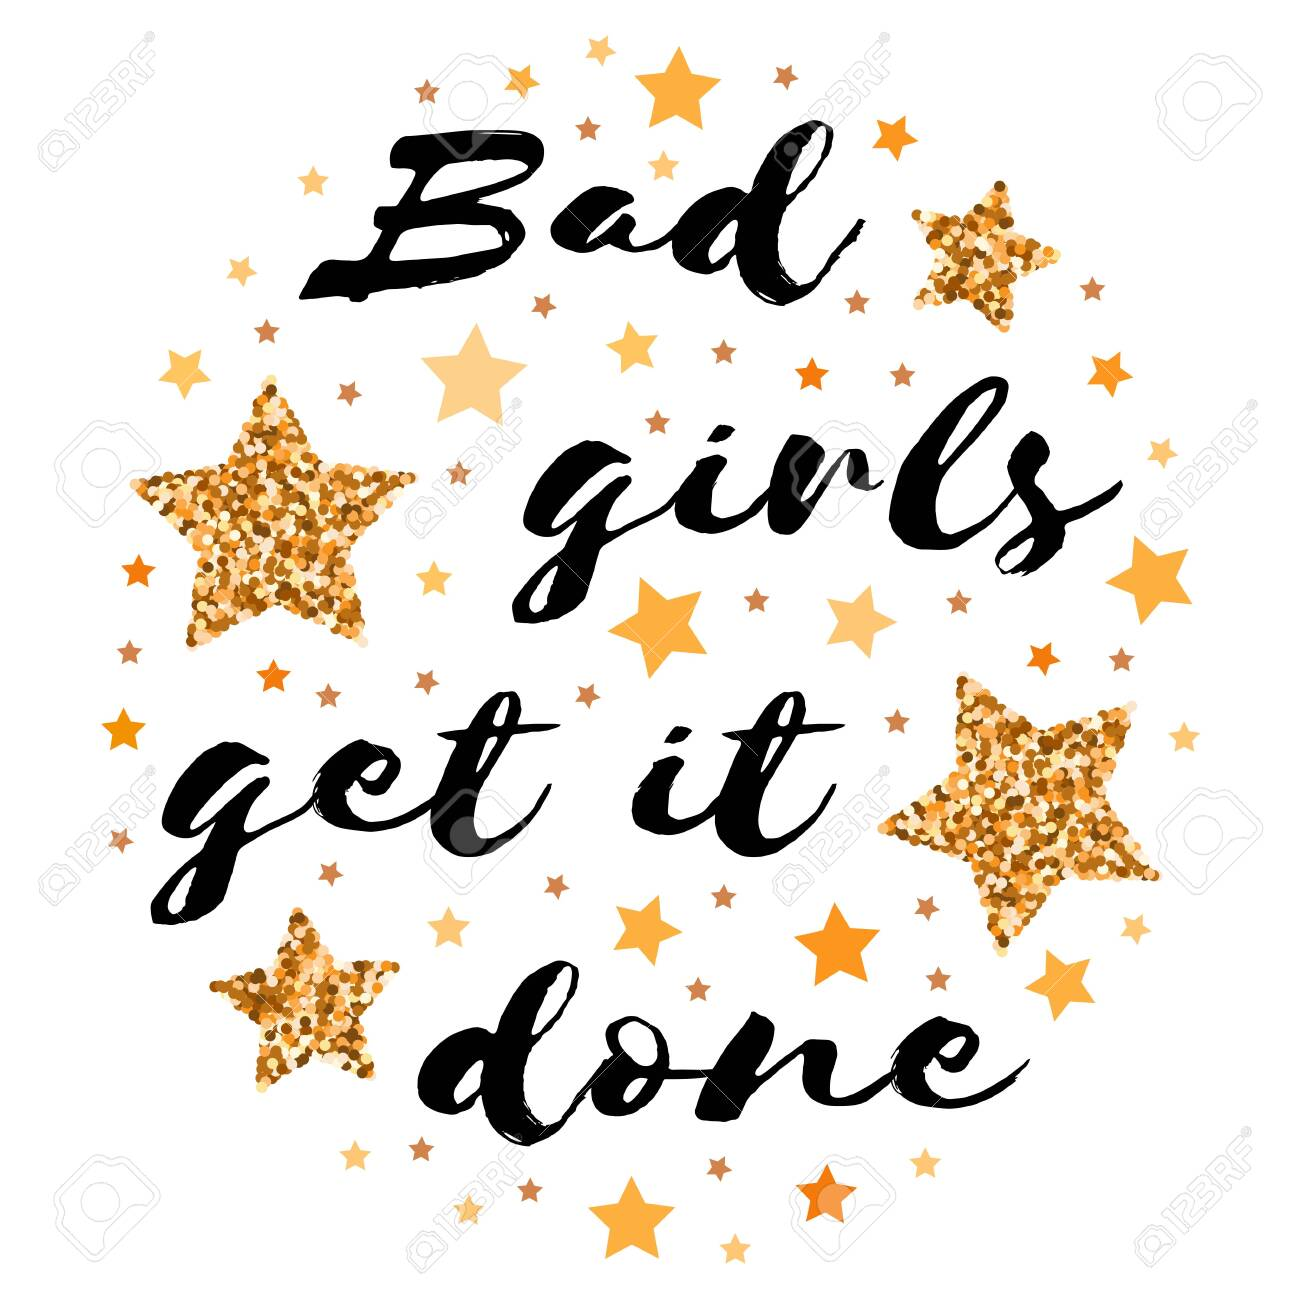 Picture of: Bad Girls Get It Done Hand Drawn Motivation Inspiration Phrase Royalty Free Cliparts Vectors And Stock Illustration Image 129134449